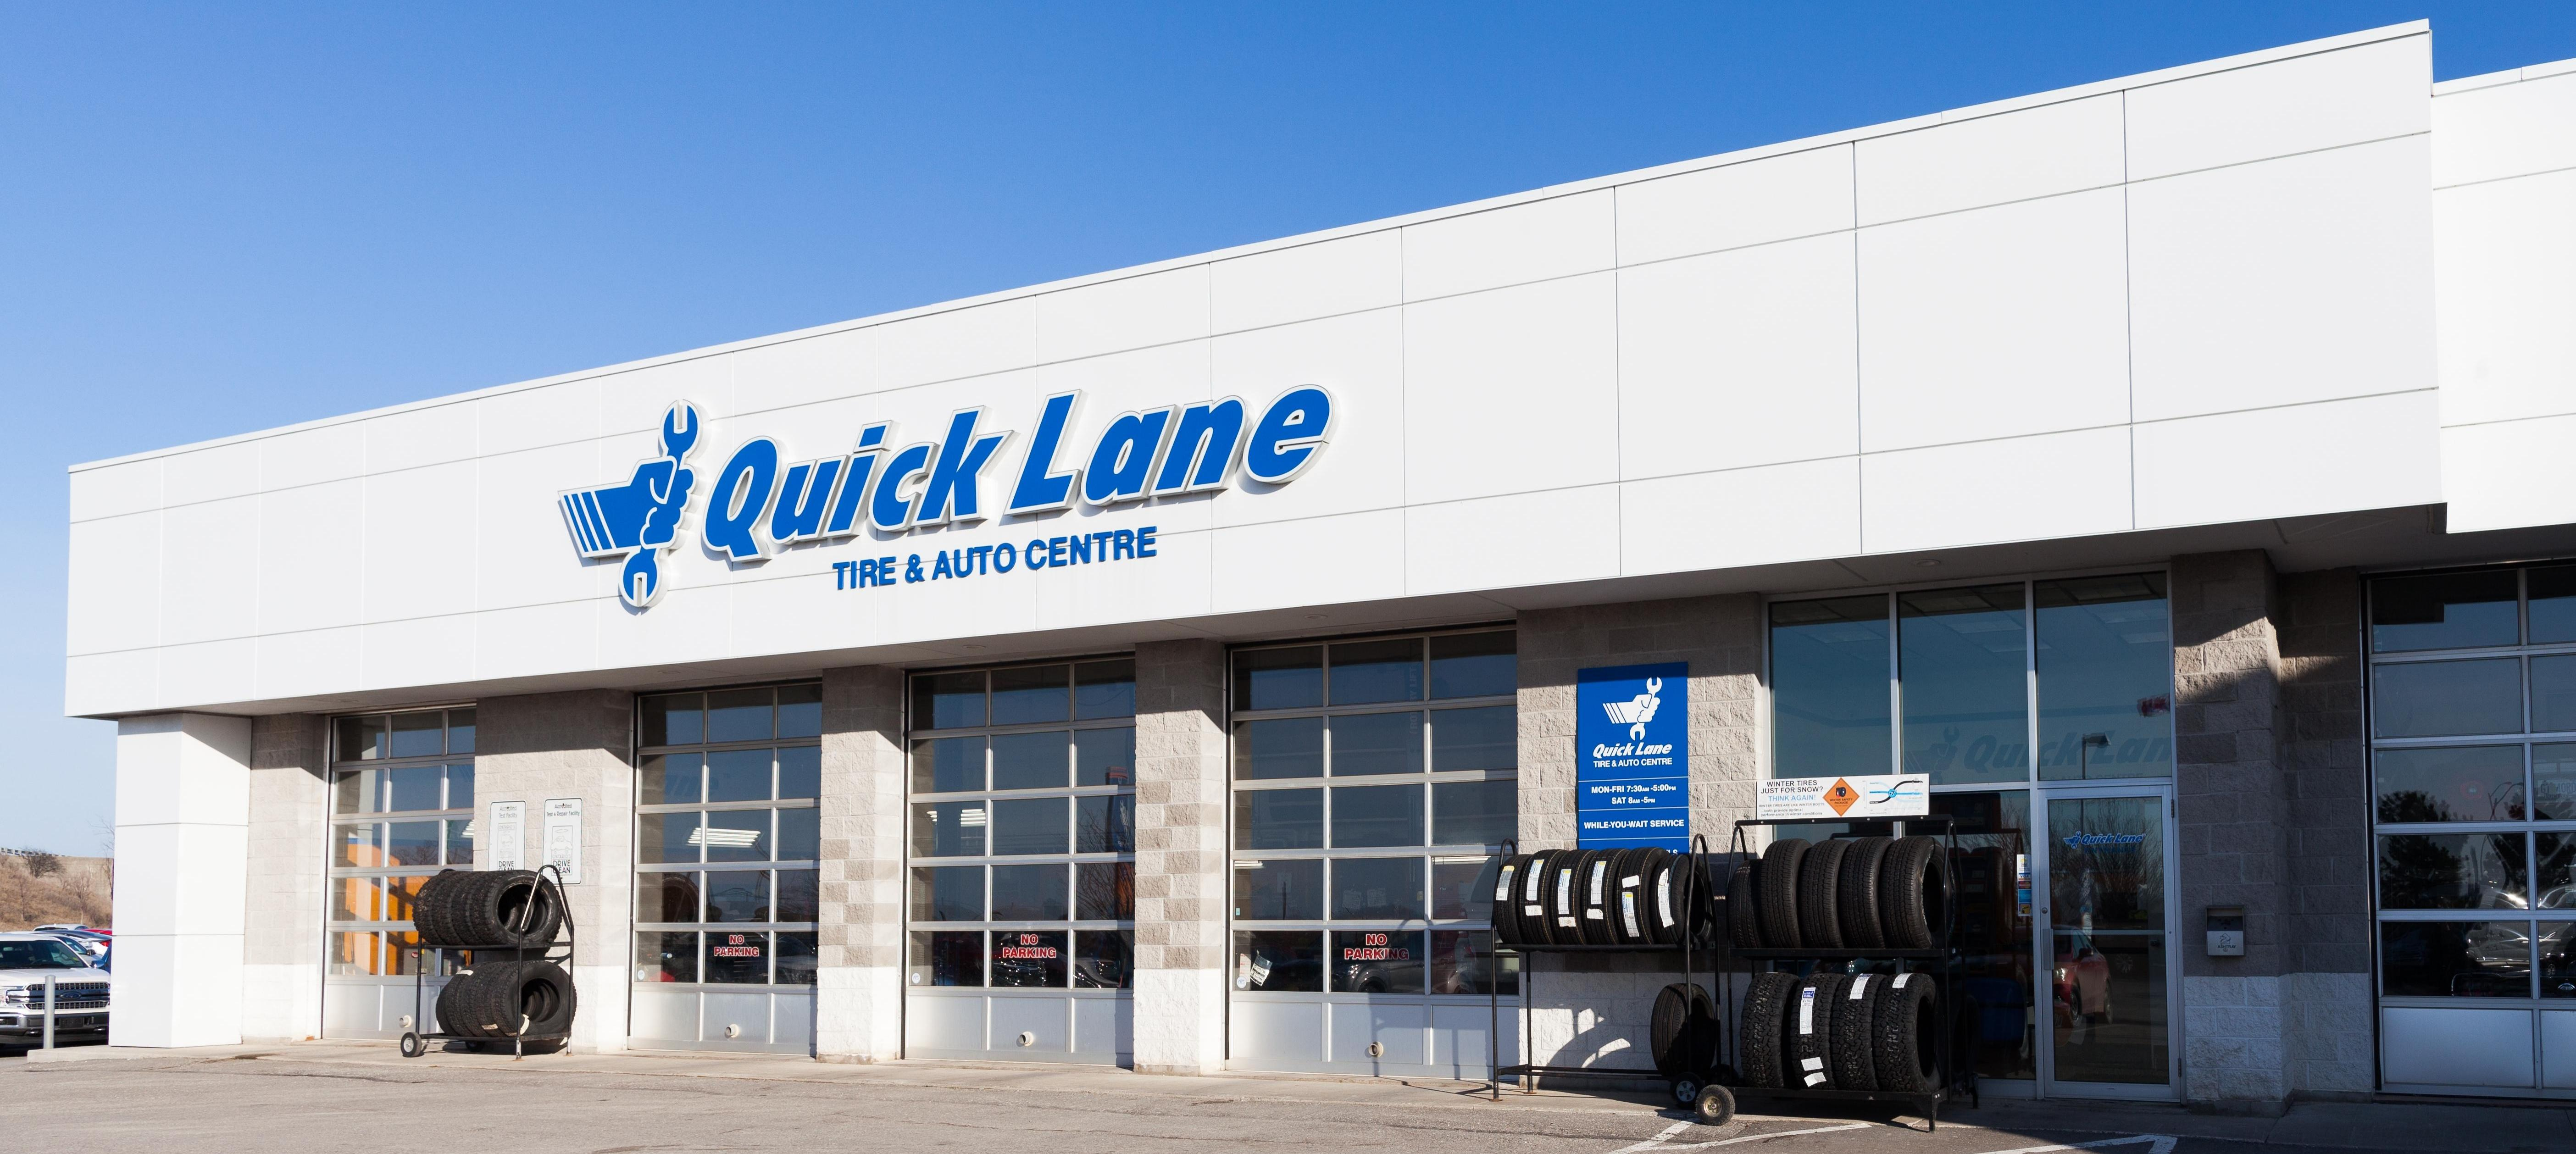 Ford quick lane service center in lindsay ford service polito quick lane malvernweather Image collections